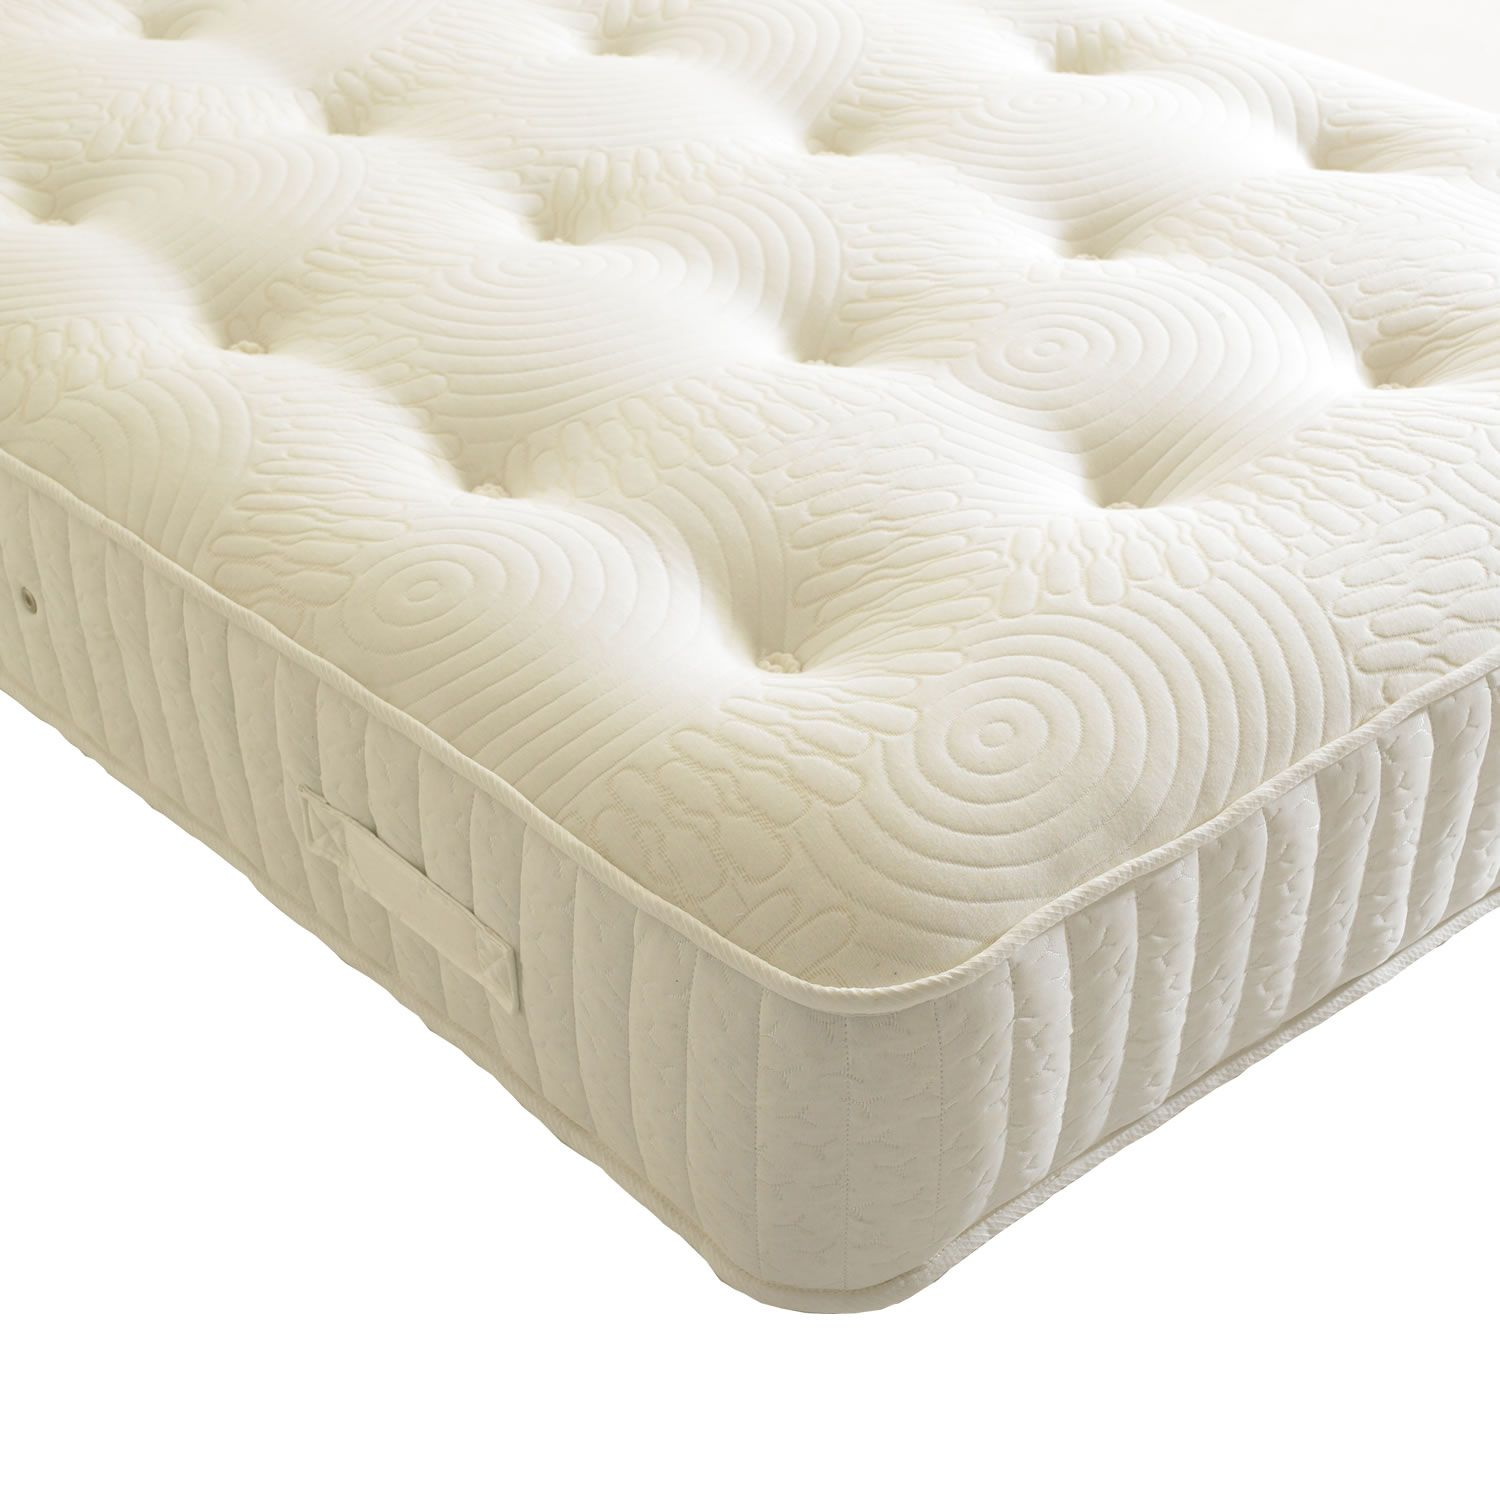 Best Mattresses Mattresses For Sale Mattresses For Sale Uk 400 x 300